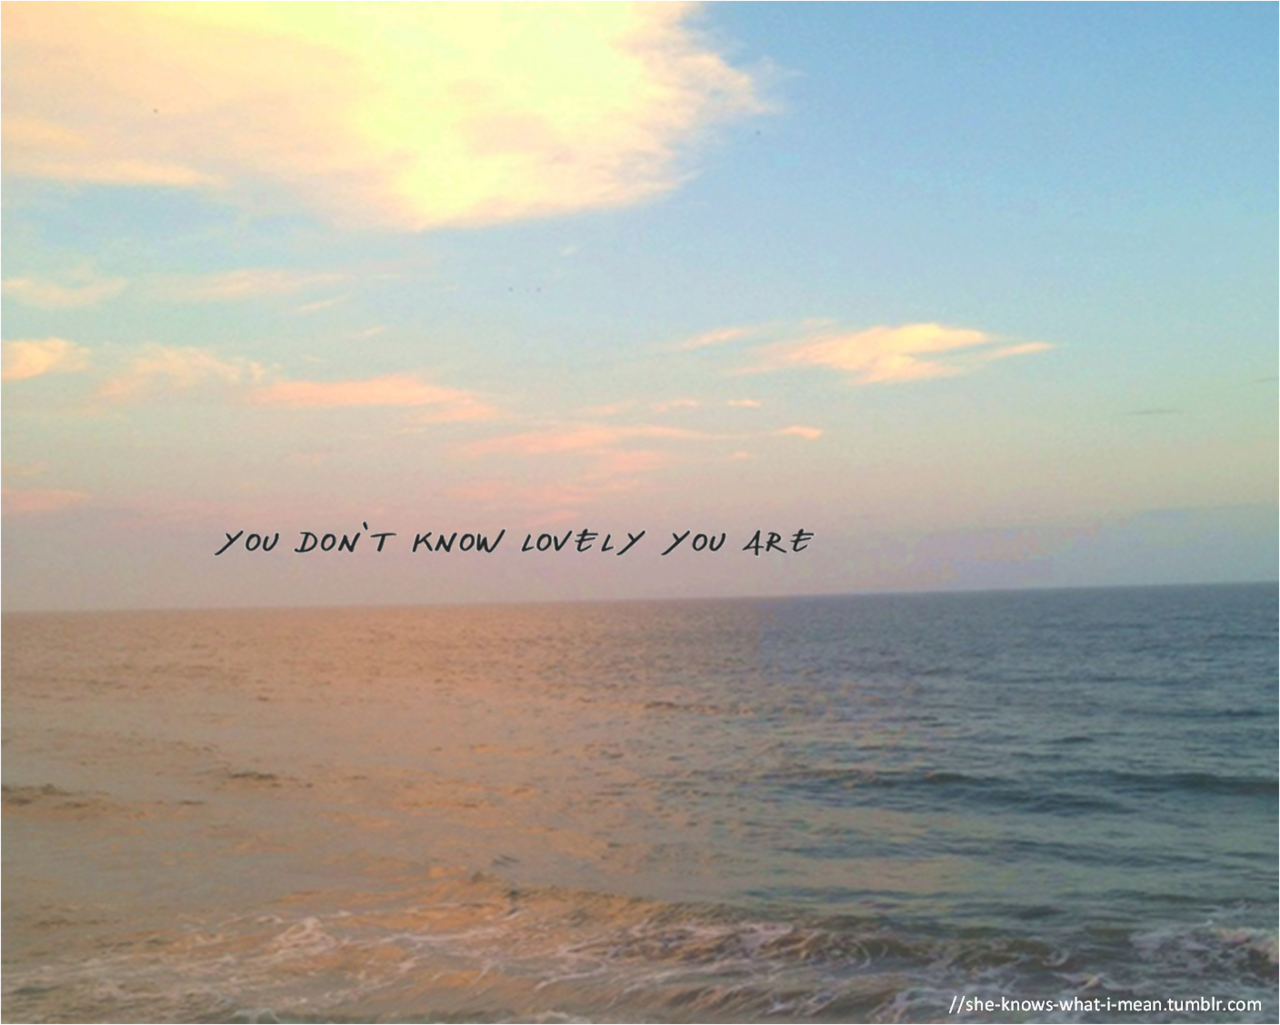 ocean quotes tumblr - photo #17